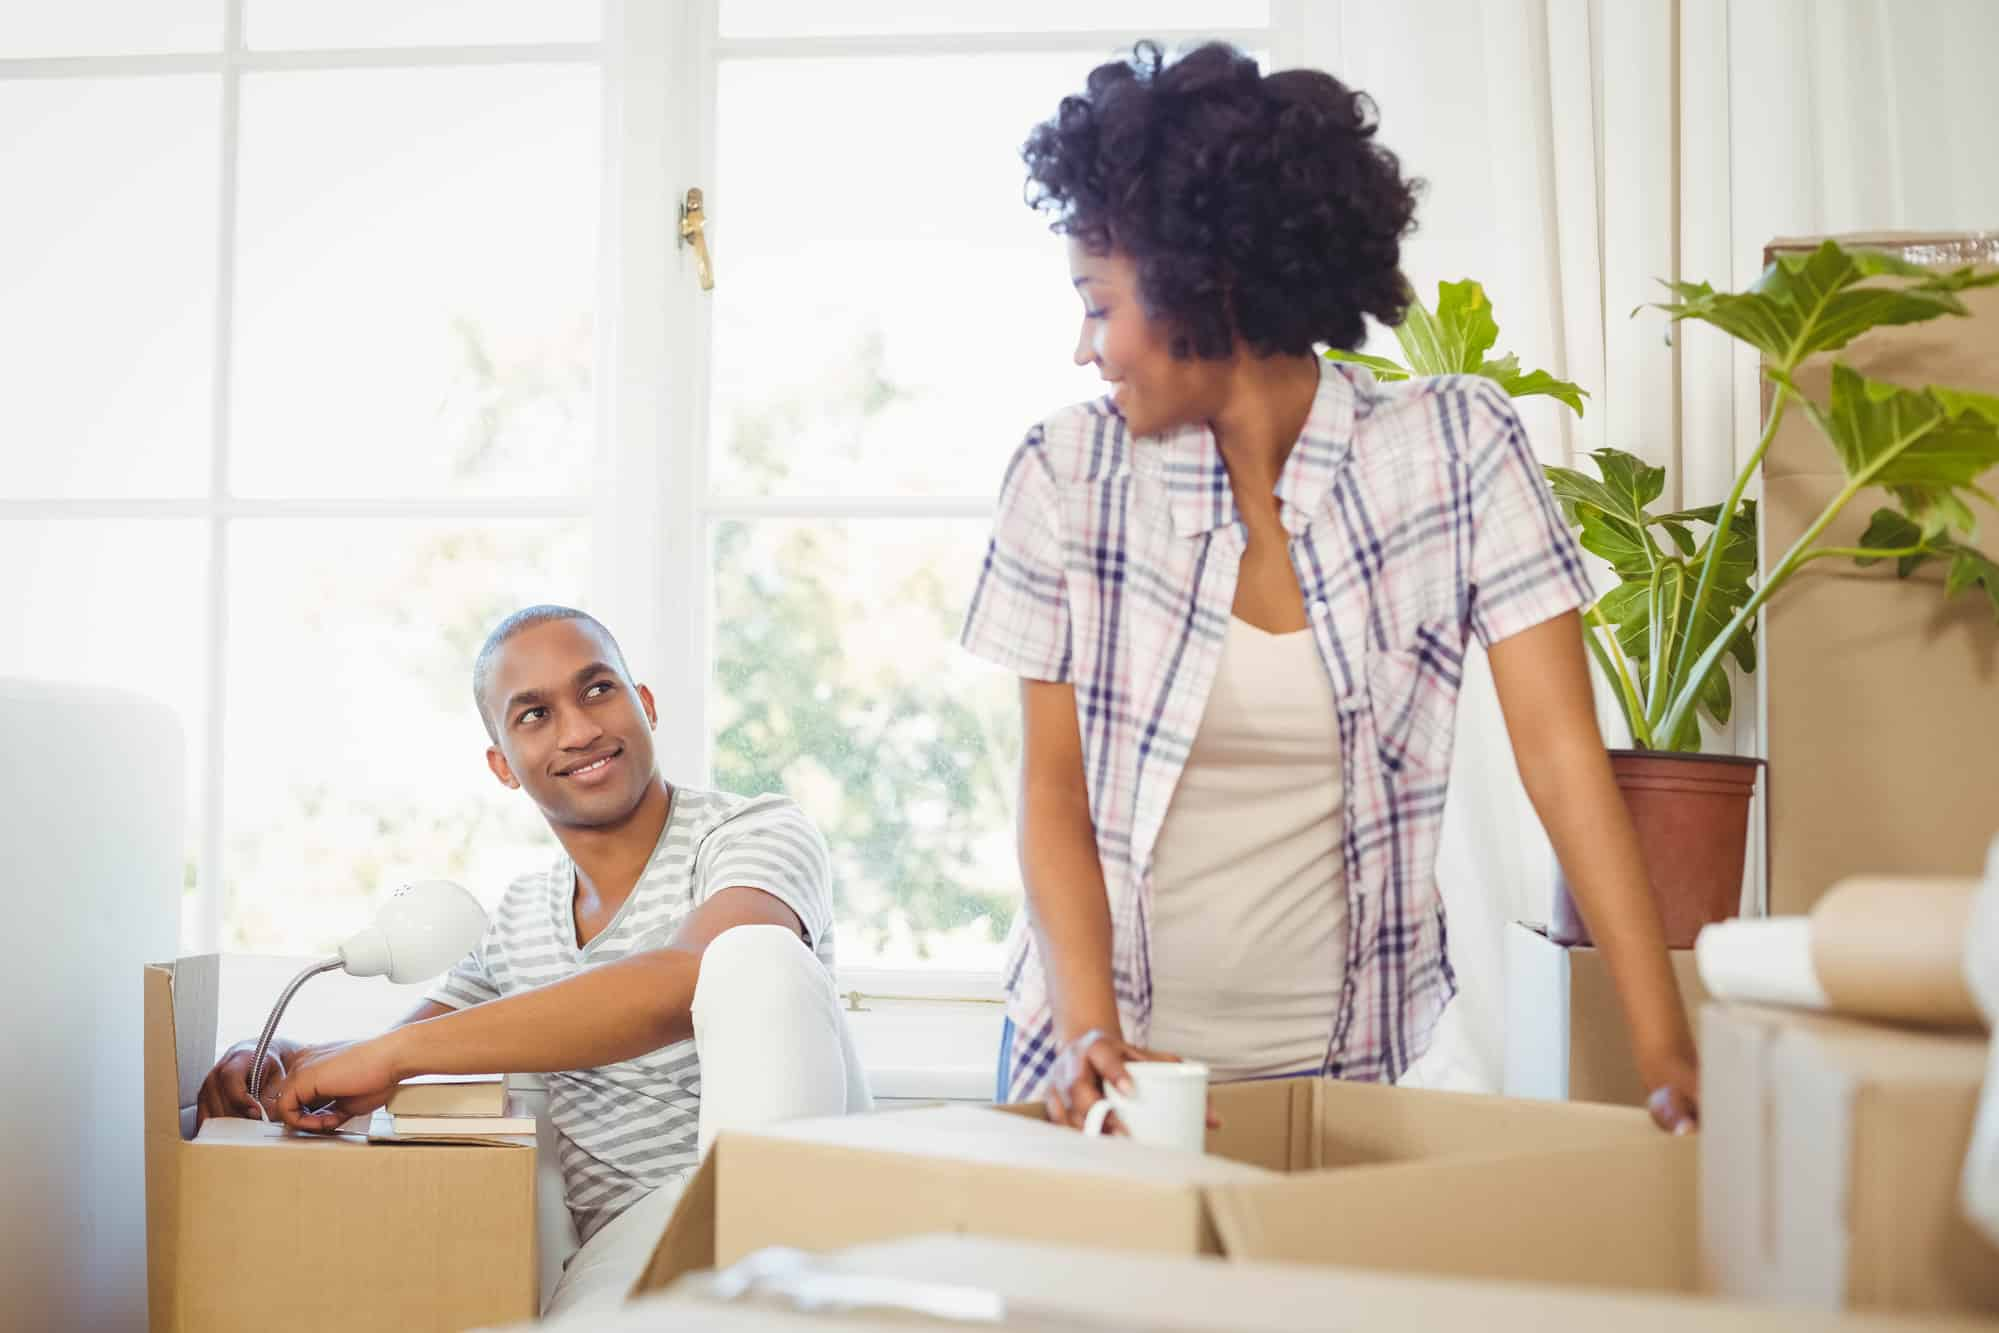 happy couple unboxing belongings in new apartment, wondering how well they negotiated their rent